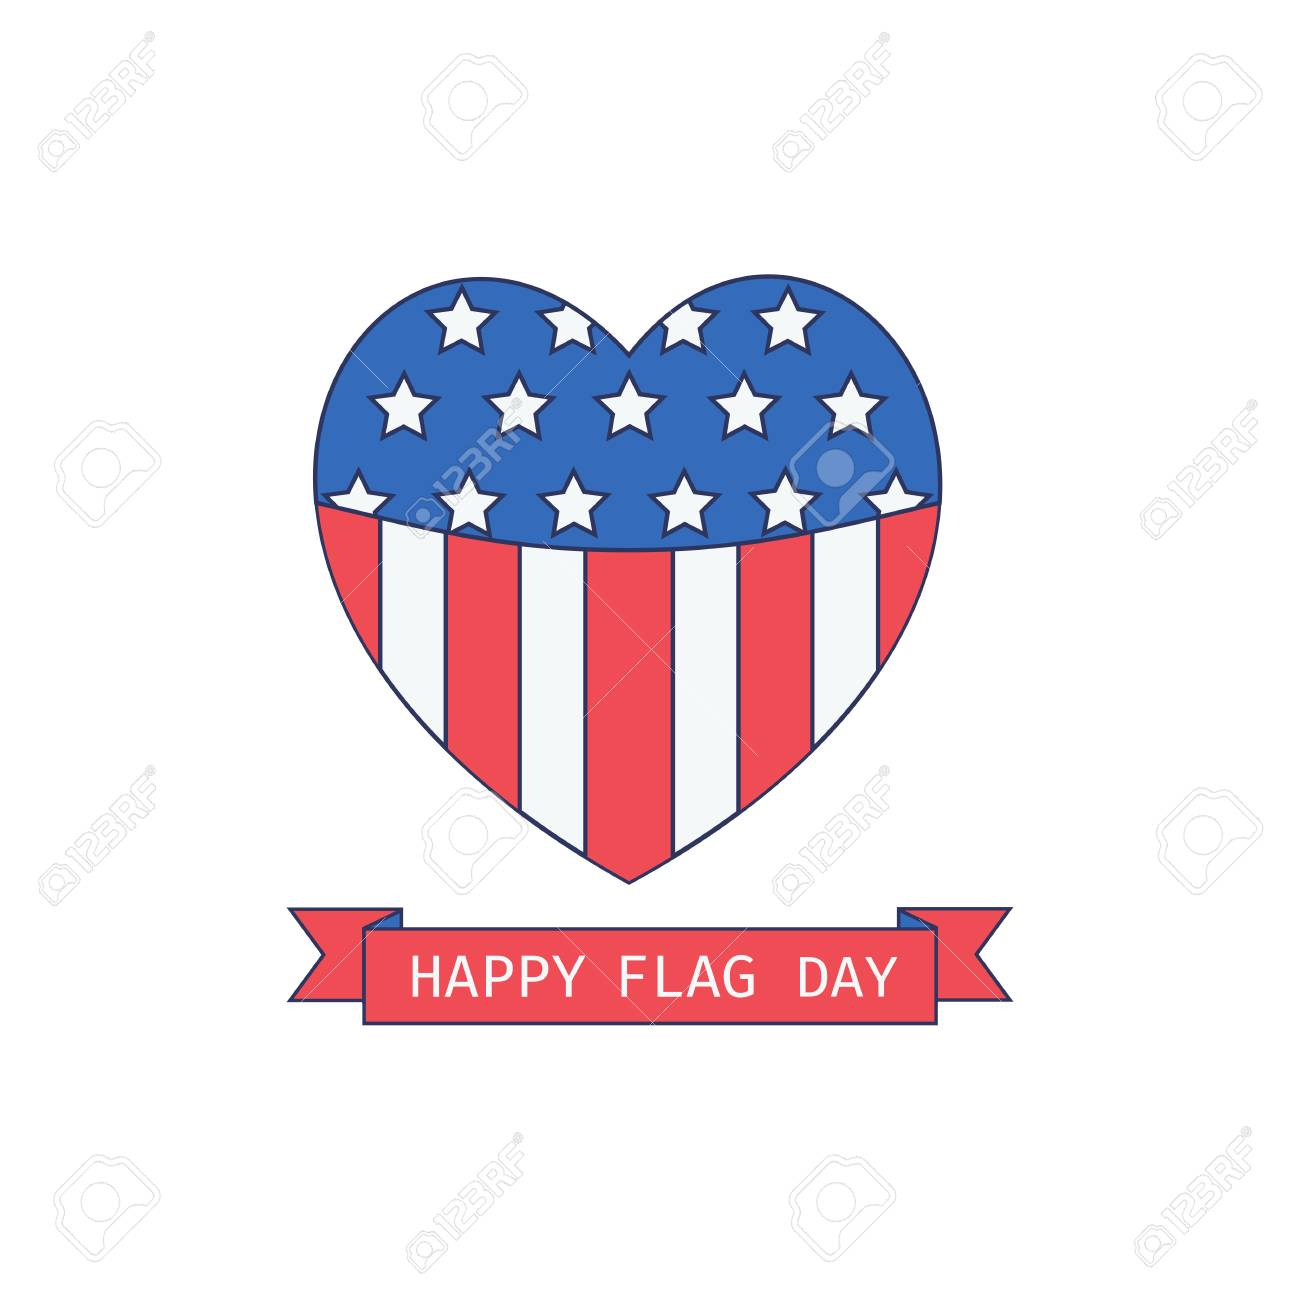 5026003cdc2 Vector illustration. Happy holiday poster. Colors of USA flag in heart  shape. Colorful design idea on